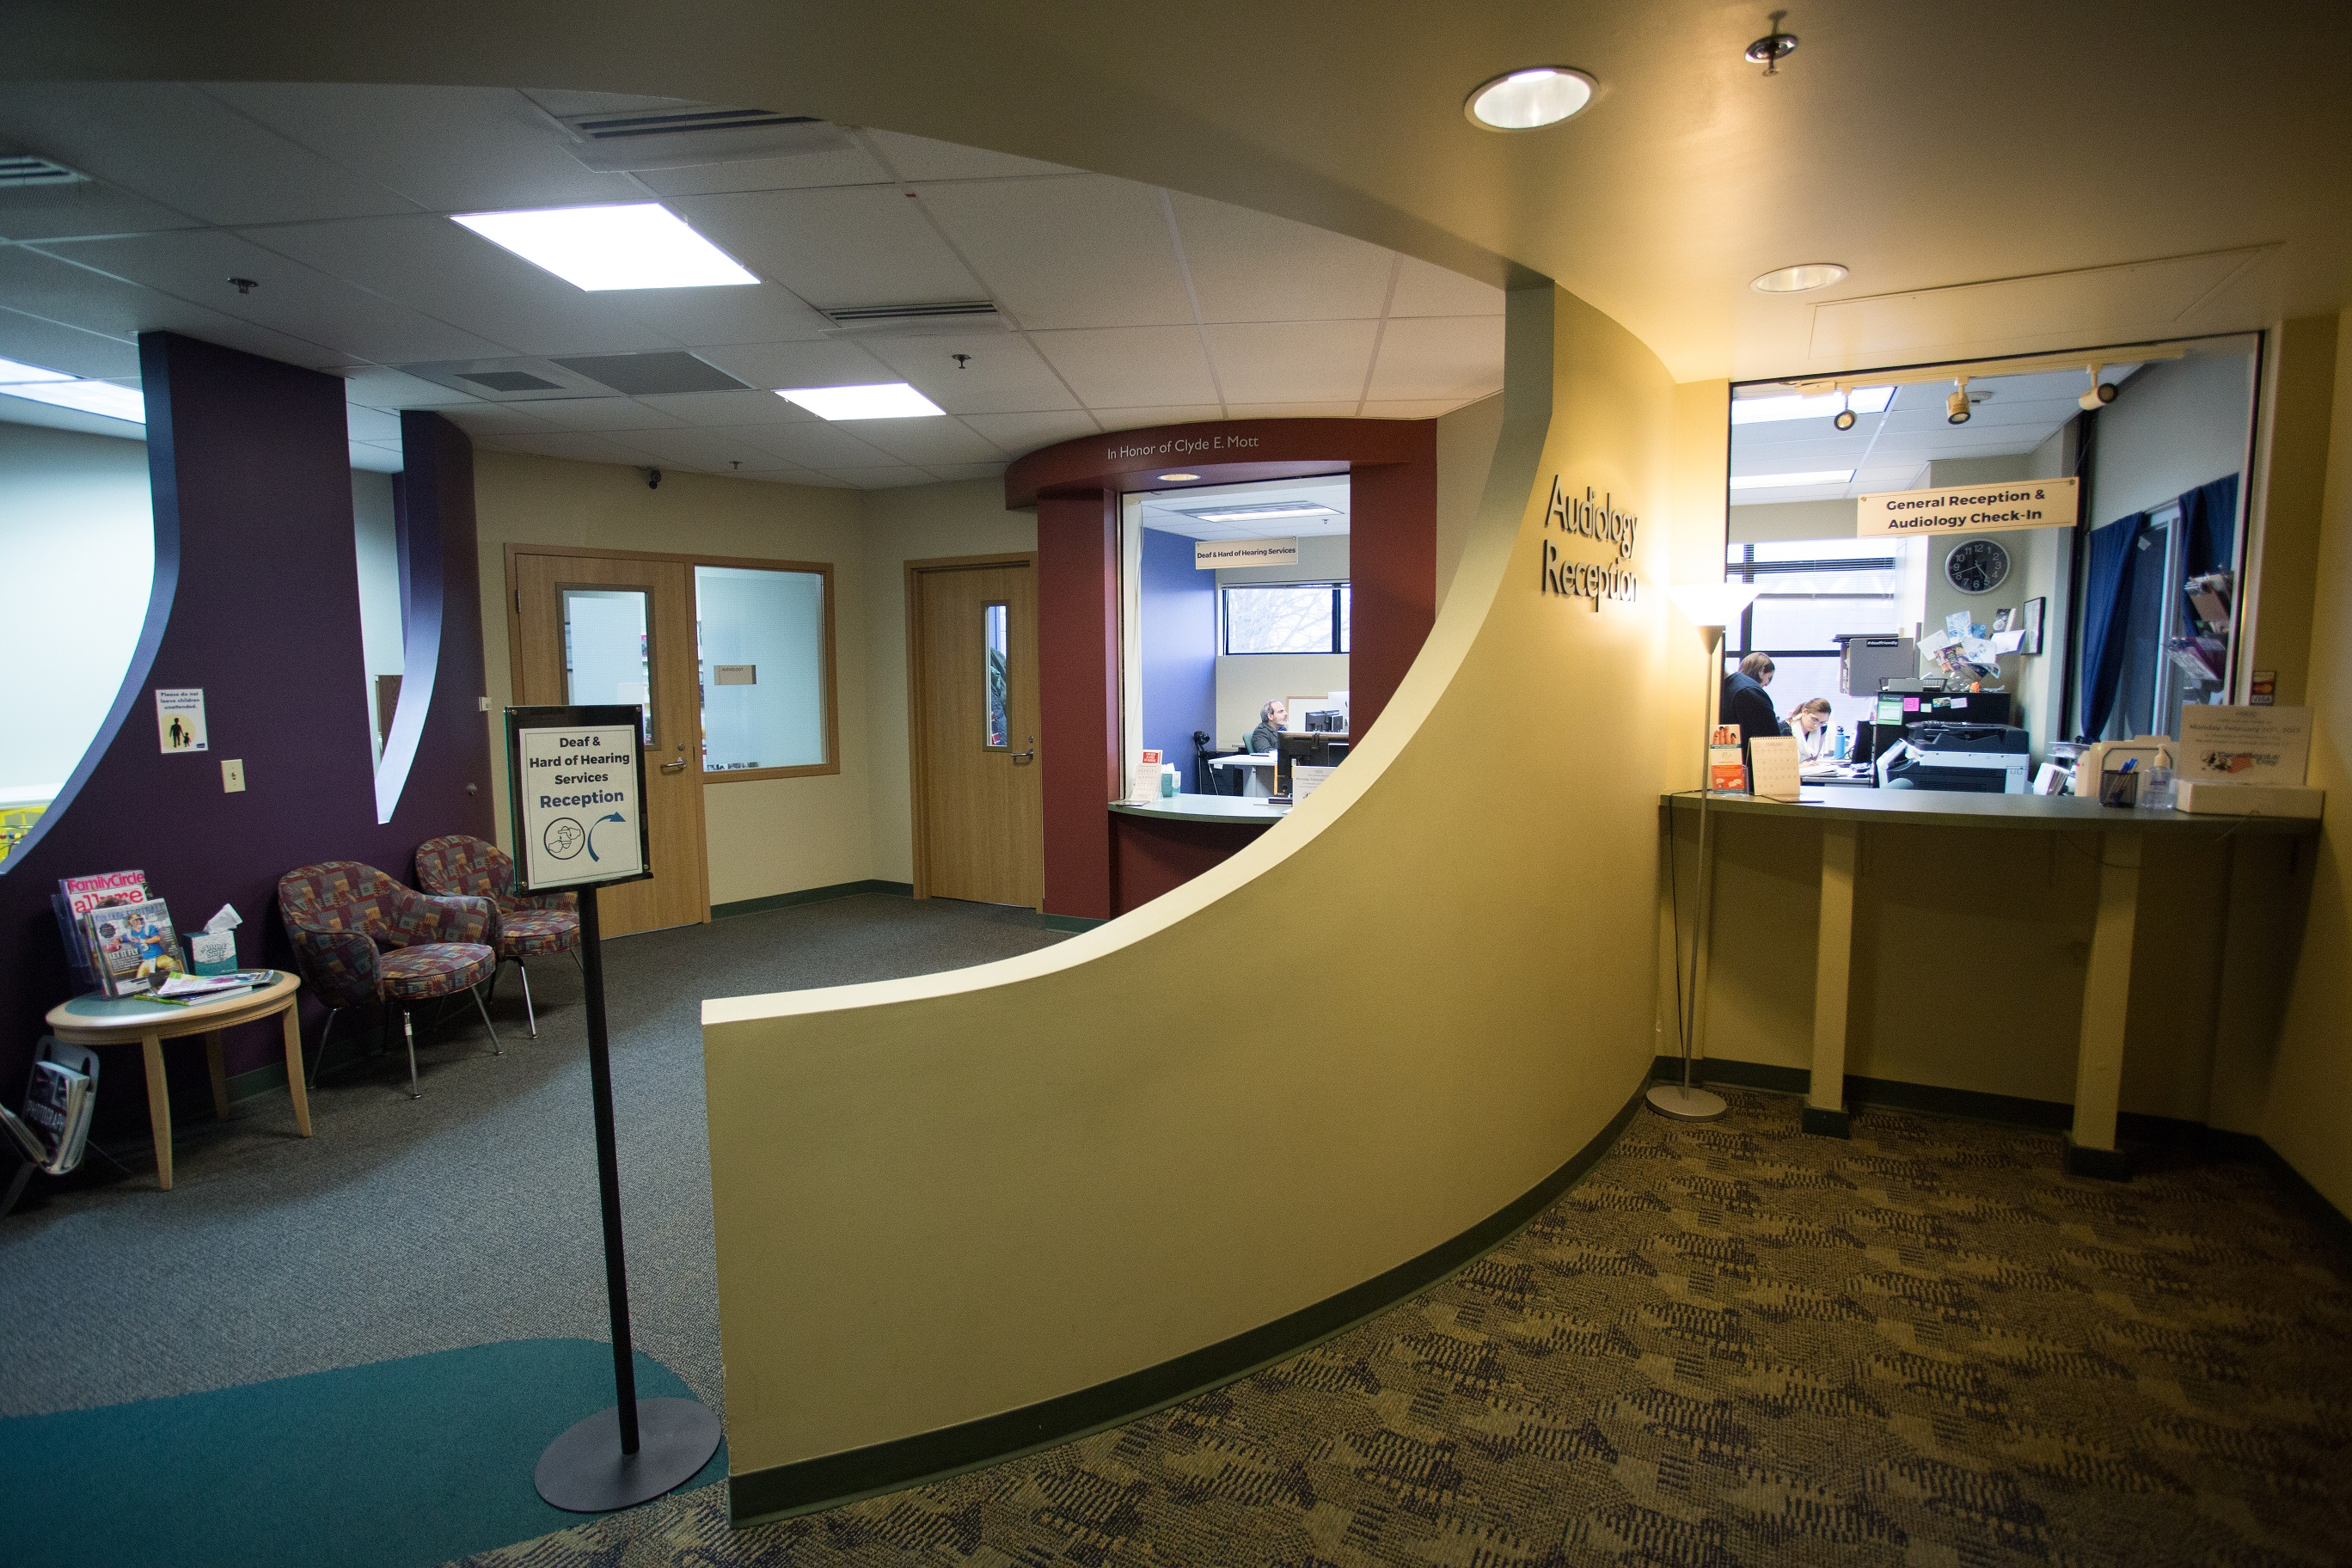 Picture of HSDC front desk area.